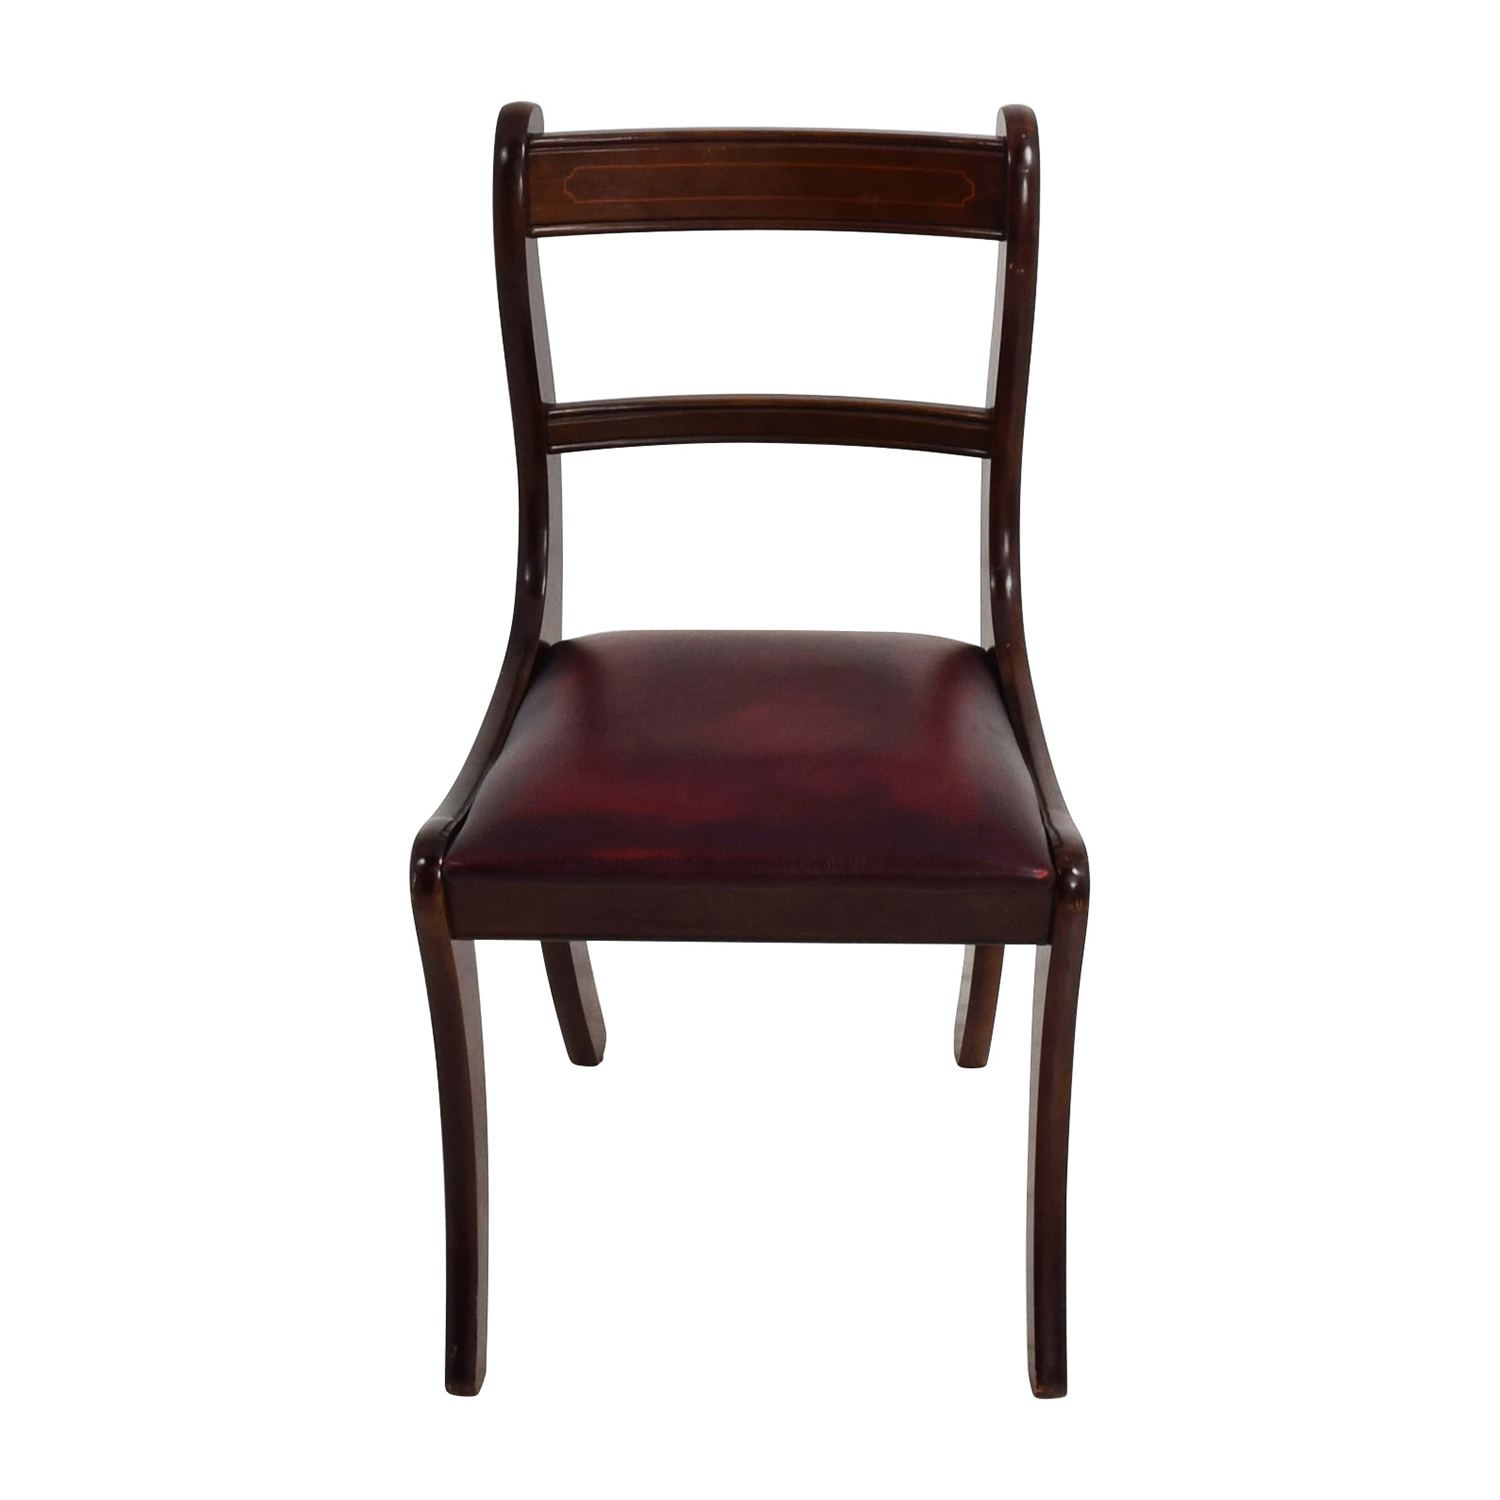 Dark Wood Chair with Leather Seat used